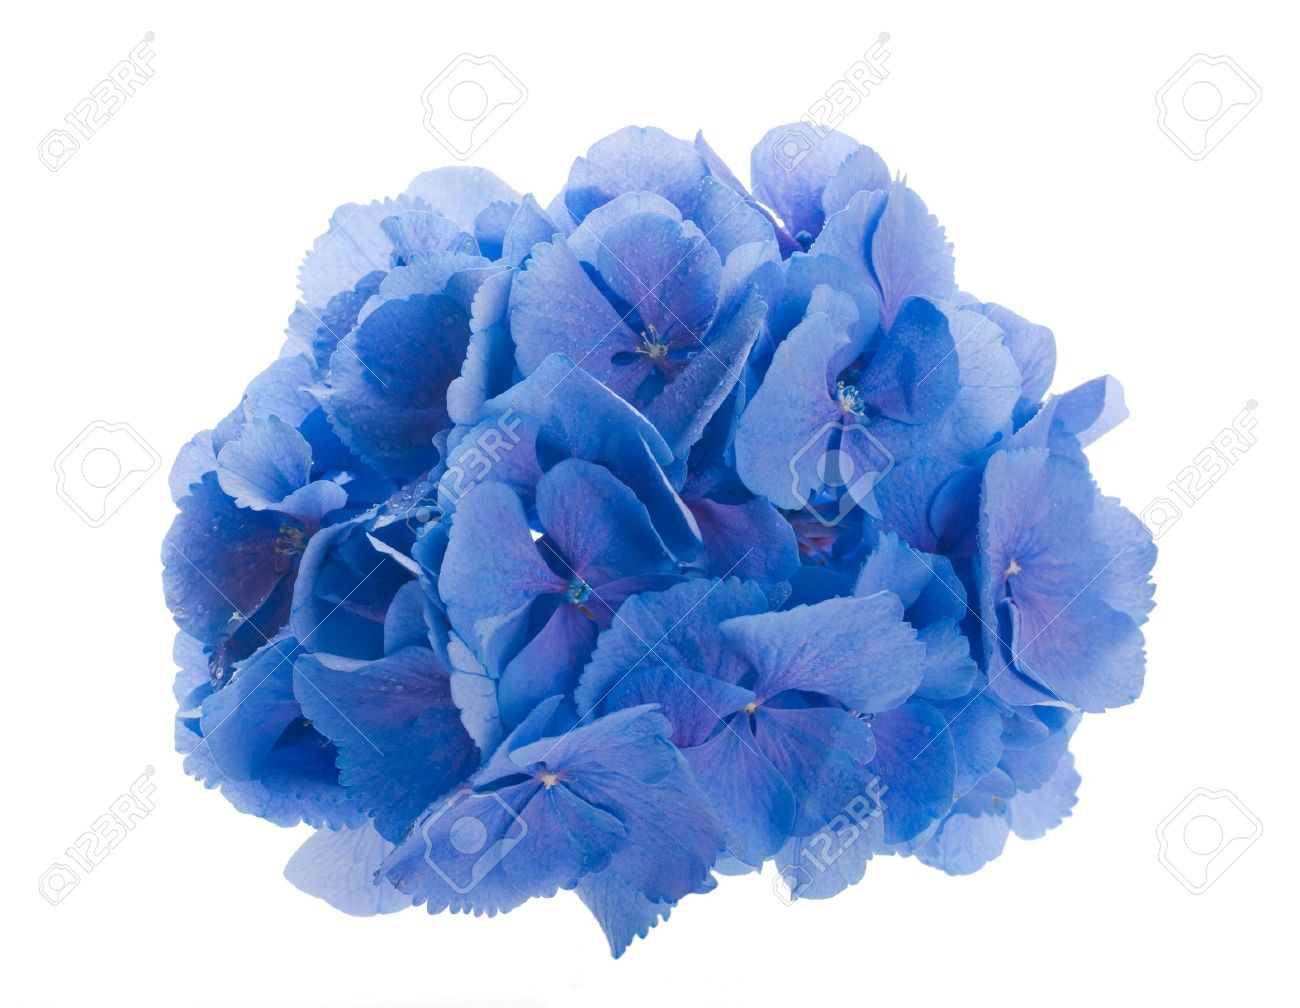 Flowers in a bouquet blue hydrangeas and white flowers royalty fria flowers in a bouquet blue hydrangeas and white flowers stockfoto 15553278 mightylinksfo